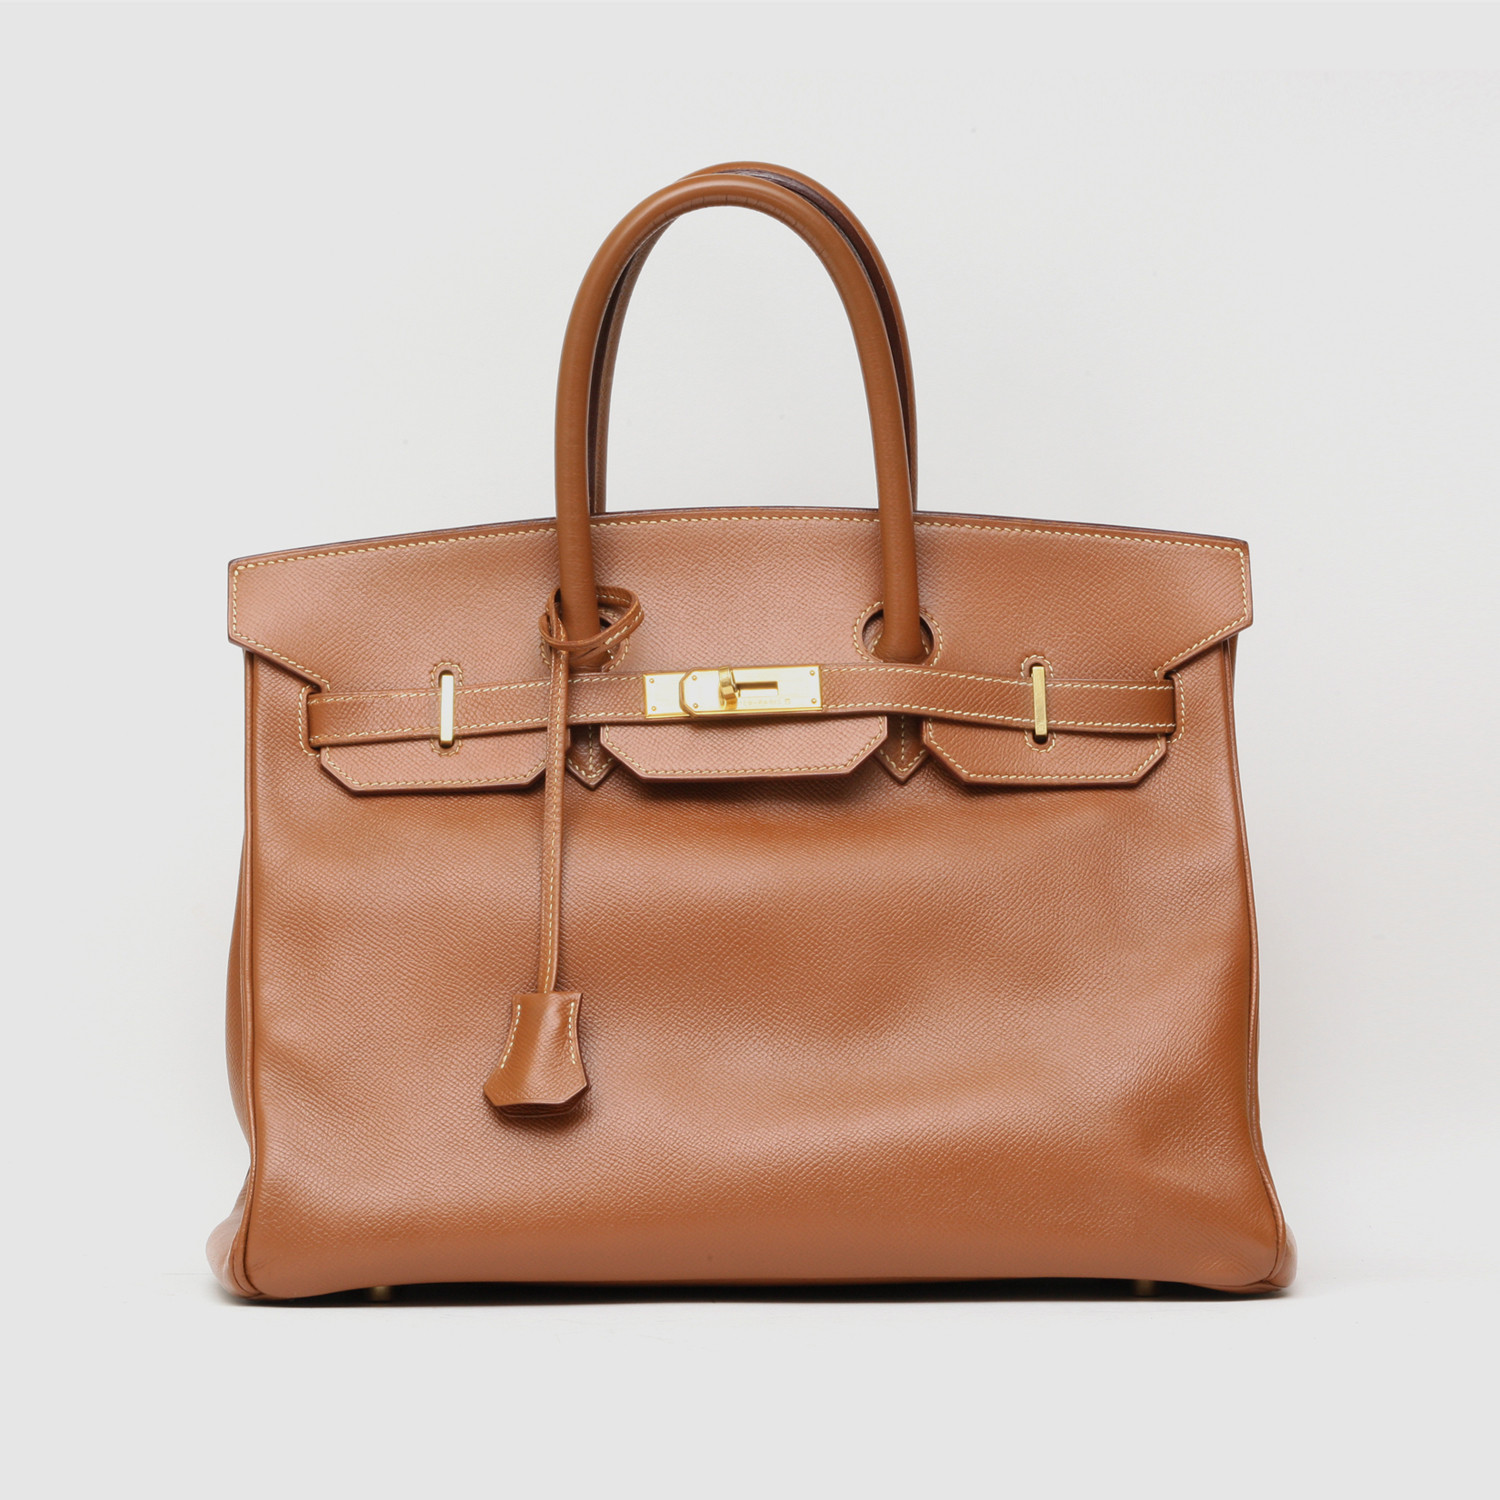 8946010b15a1 Vintage Hermès - The Iconic Birkin + Kelly Bags - Touch of Modern